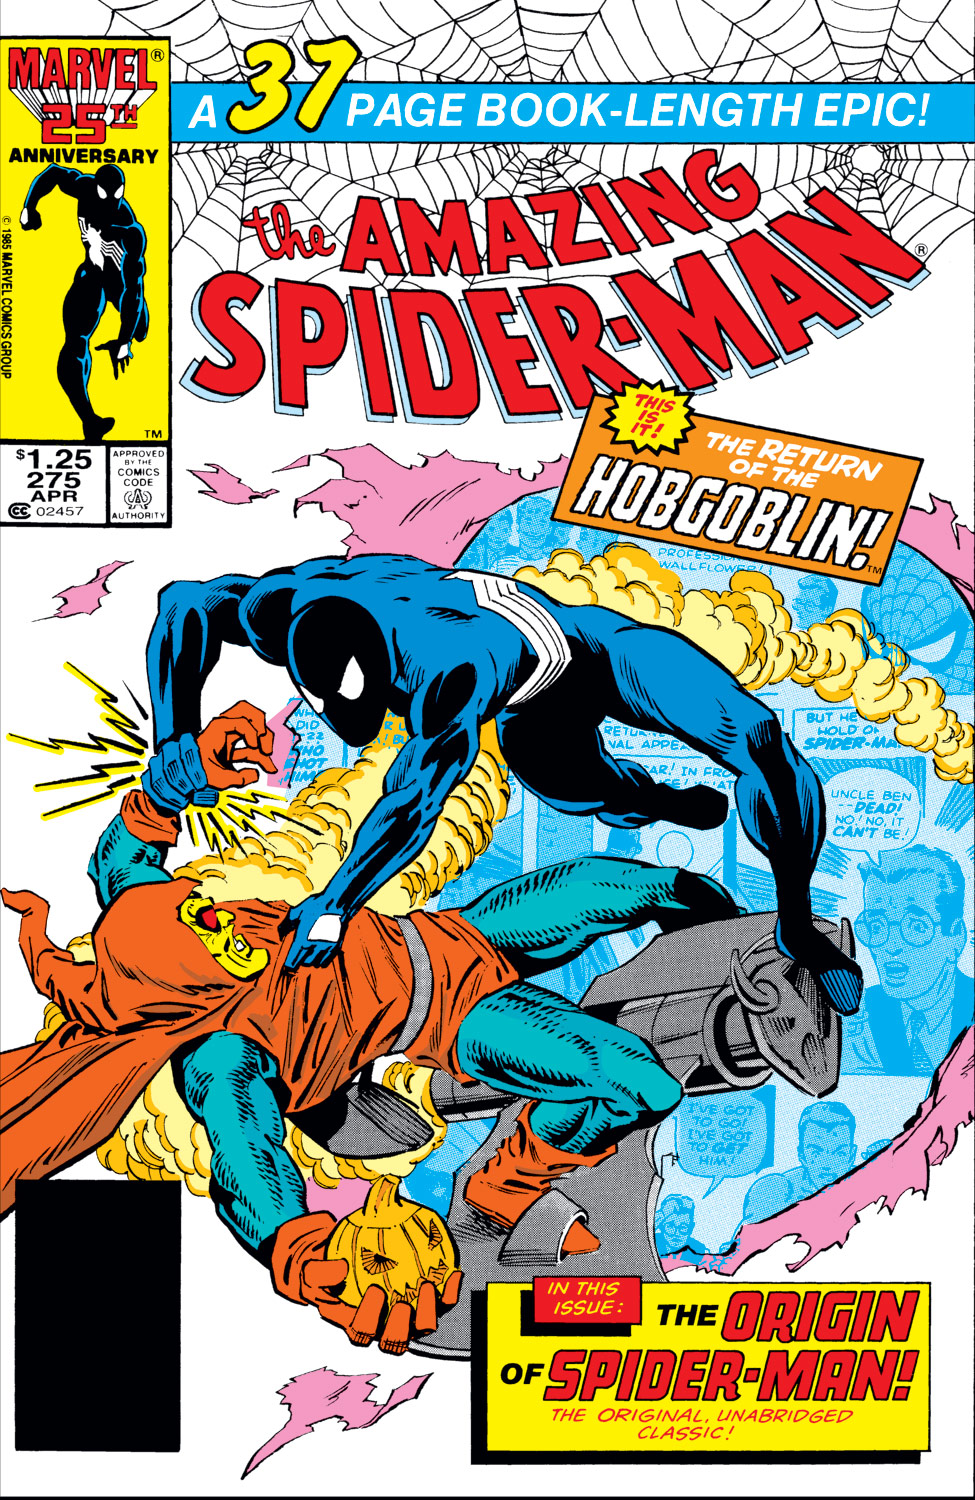 The Amazing Spider-Man (1963) #275